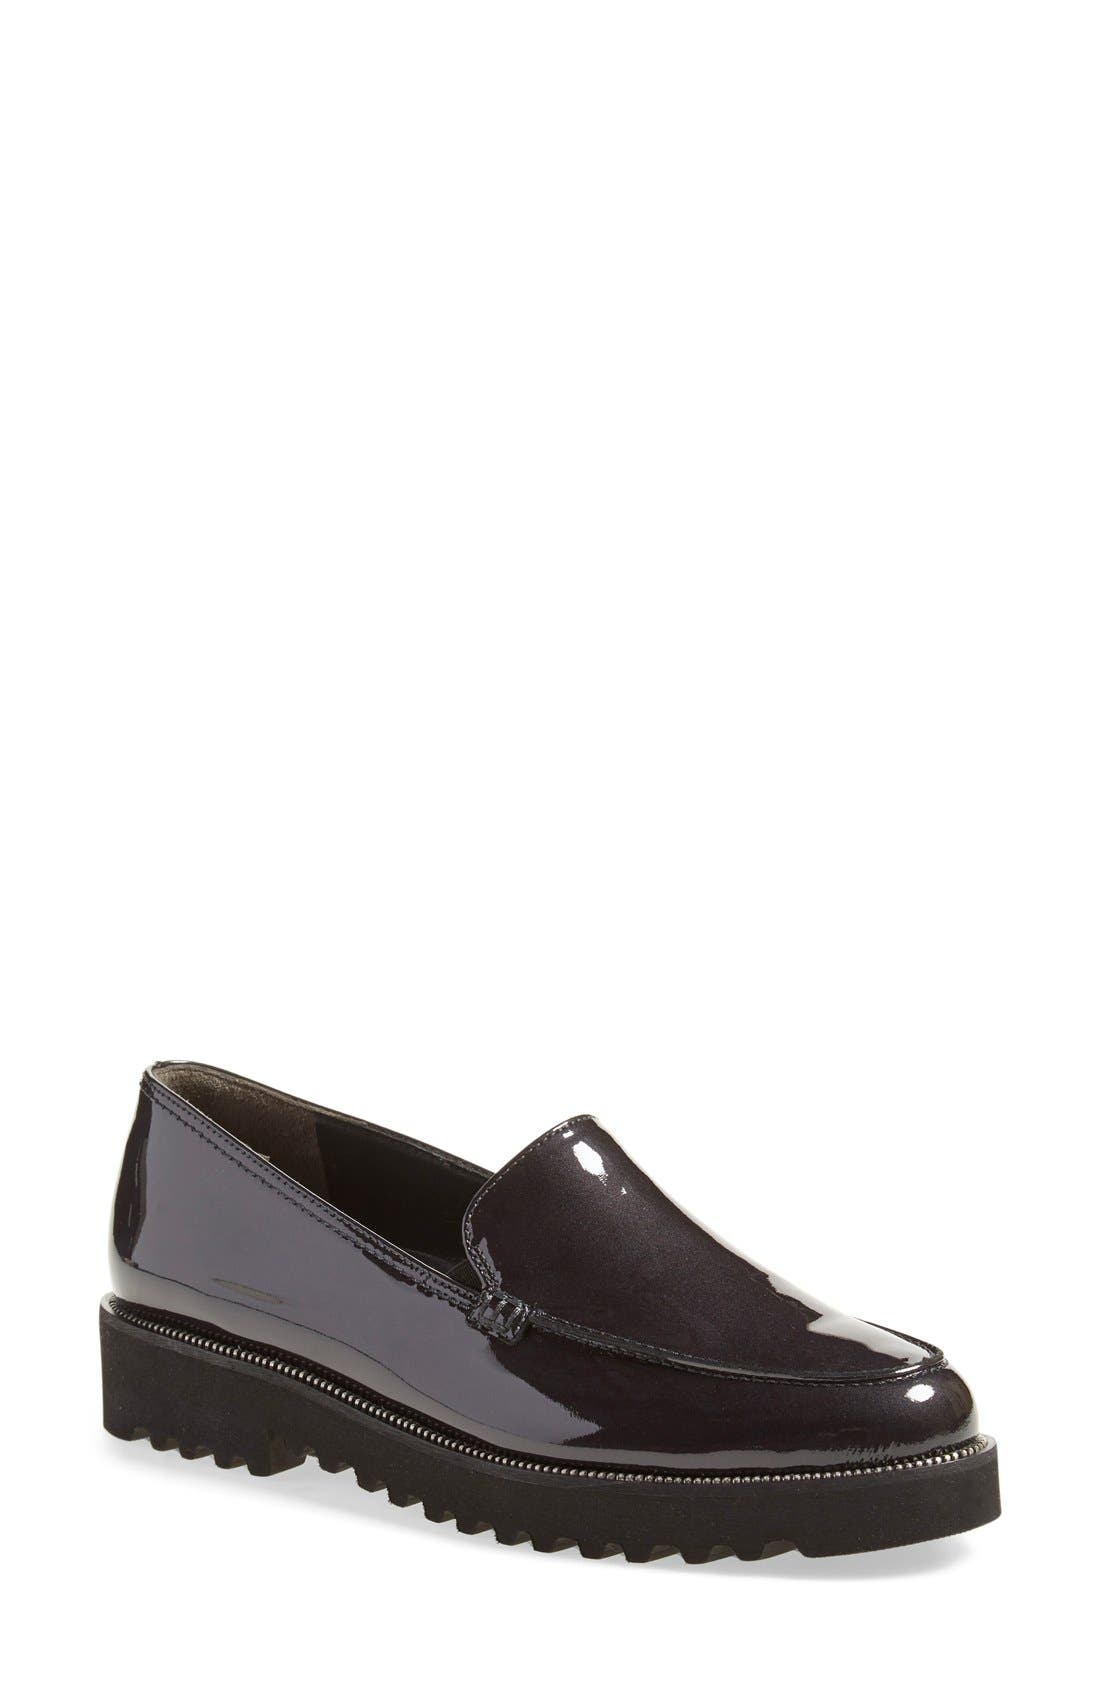 Main Image - Paul Green 'Jojo' Loafer (Women)